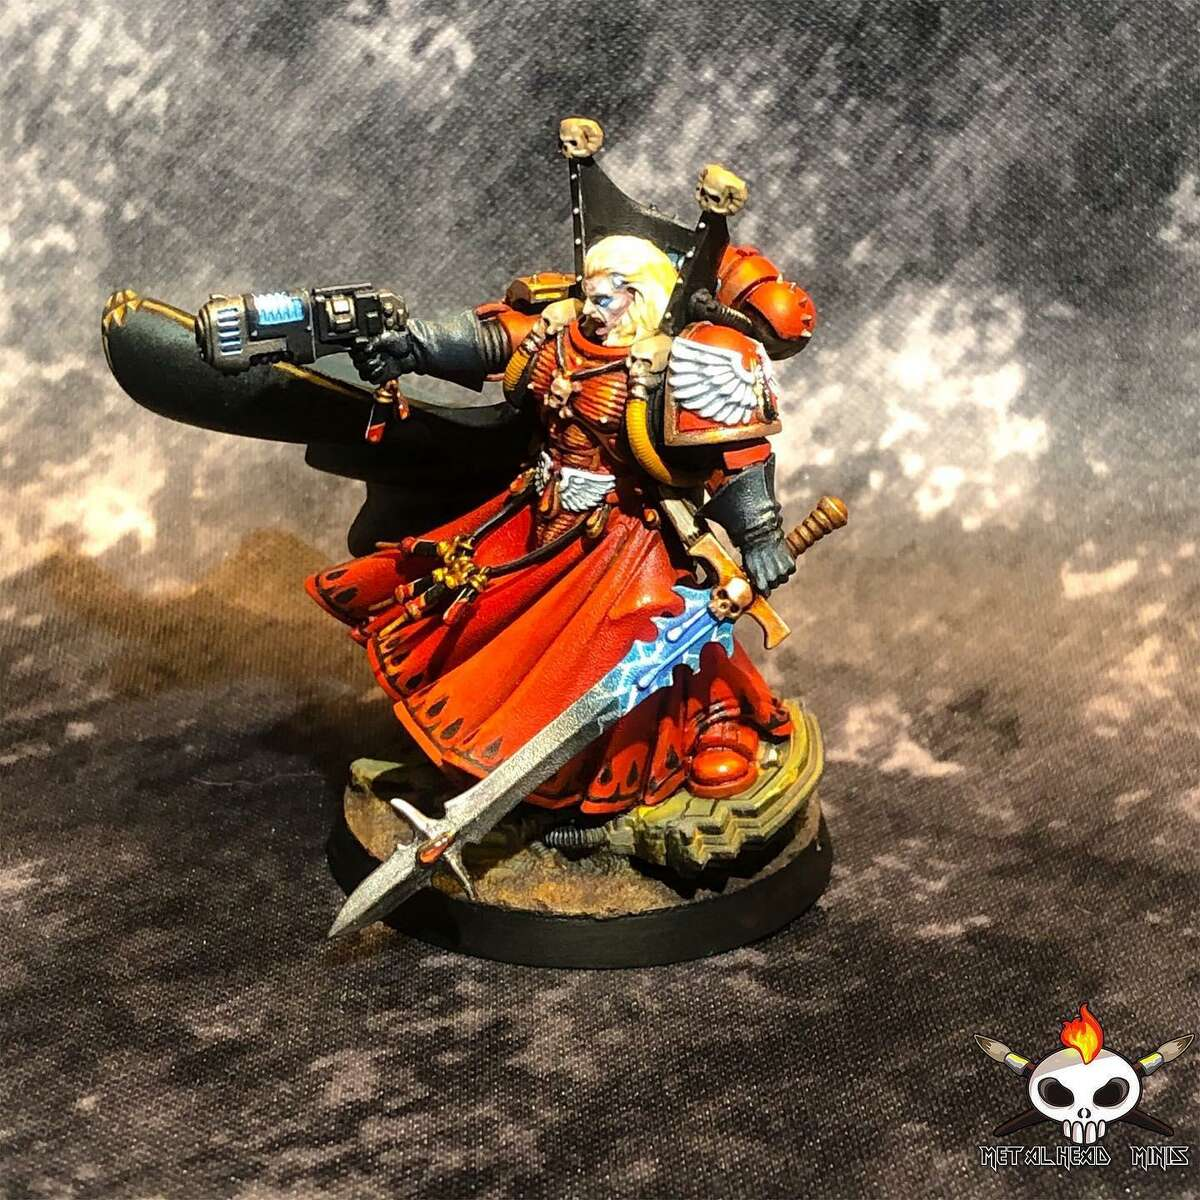 """Metalhead Minis founder Lyn Stahl incorporates all sorts of intricate details into her painted miniatures, as shown in this piece of the character Mephiston from the tabletop game """"Warhammer 40,000."""""""